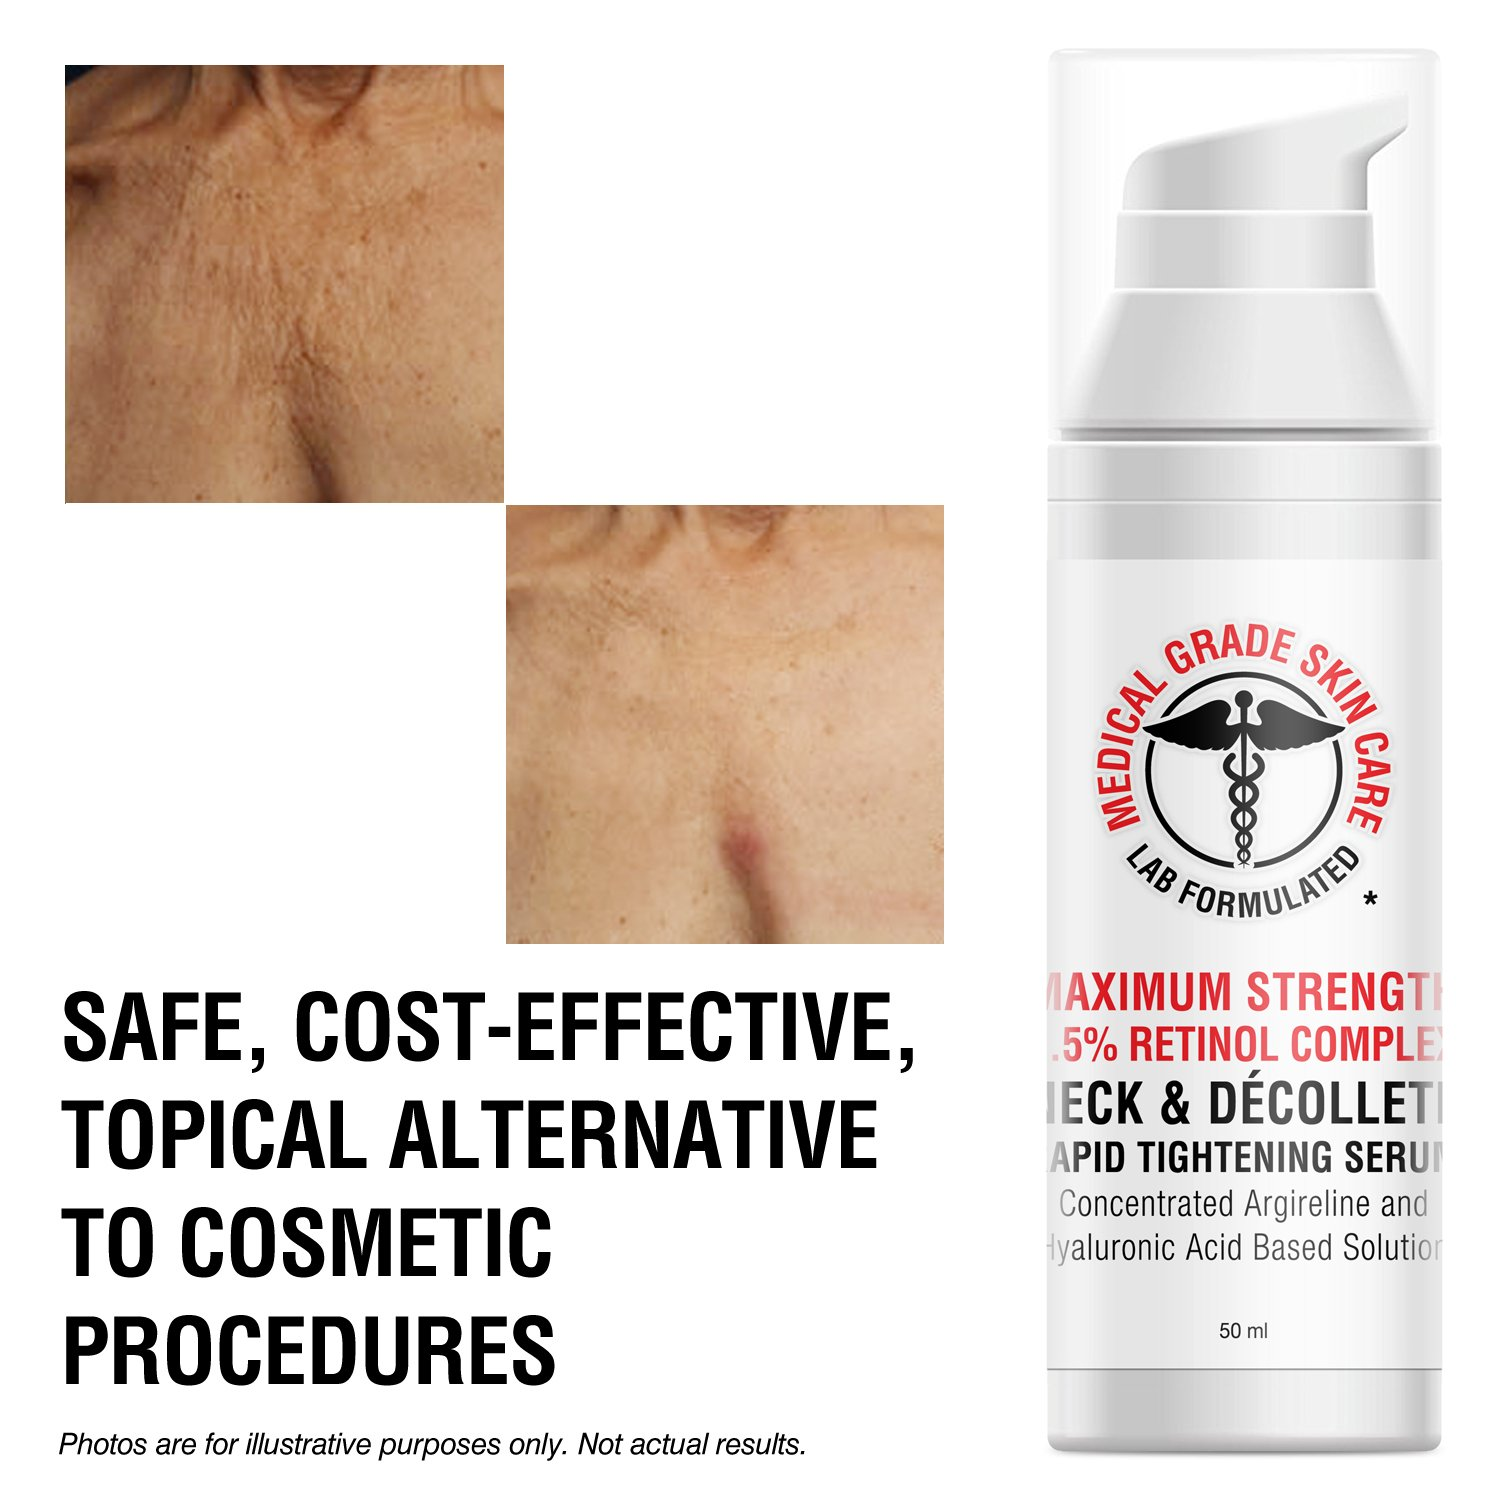 Neck & Décolleté Tightening Serum   Best Anti-Aging Firming Neck Cream Made With Maximum Strength 2.5% Retinol Complex   Concentrated With Argireline and Hyaluronic Acid by SkinPro (Image #6)